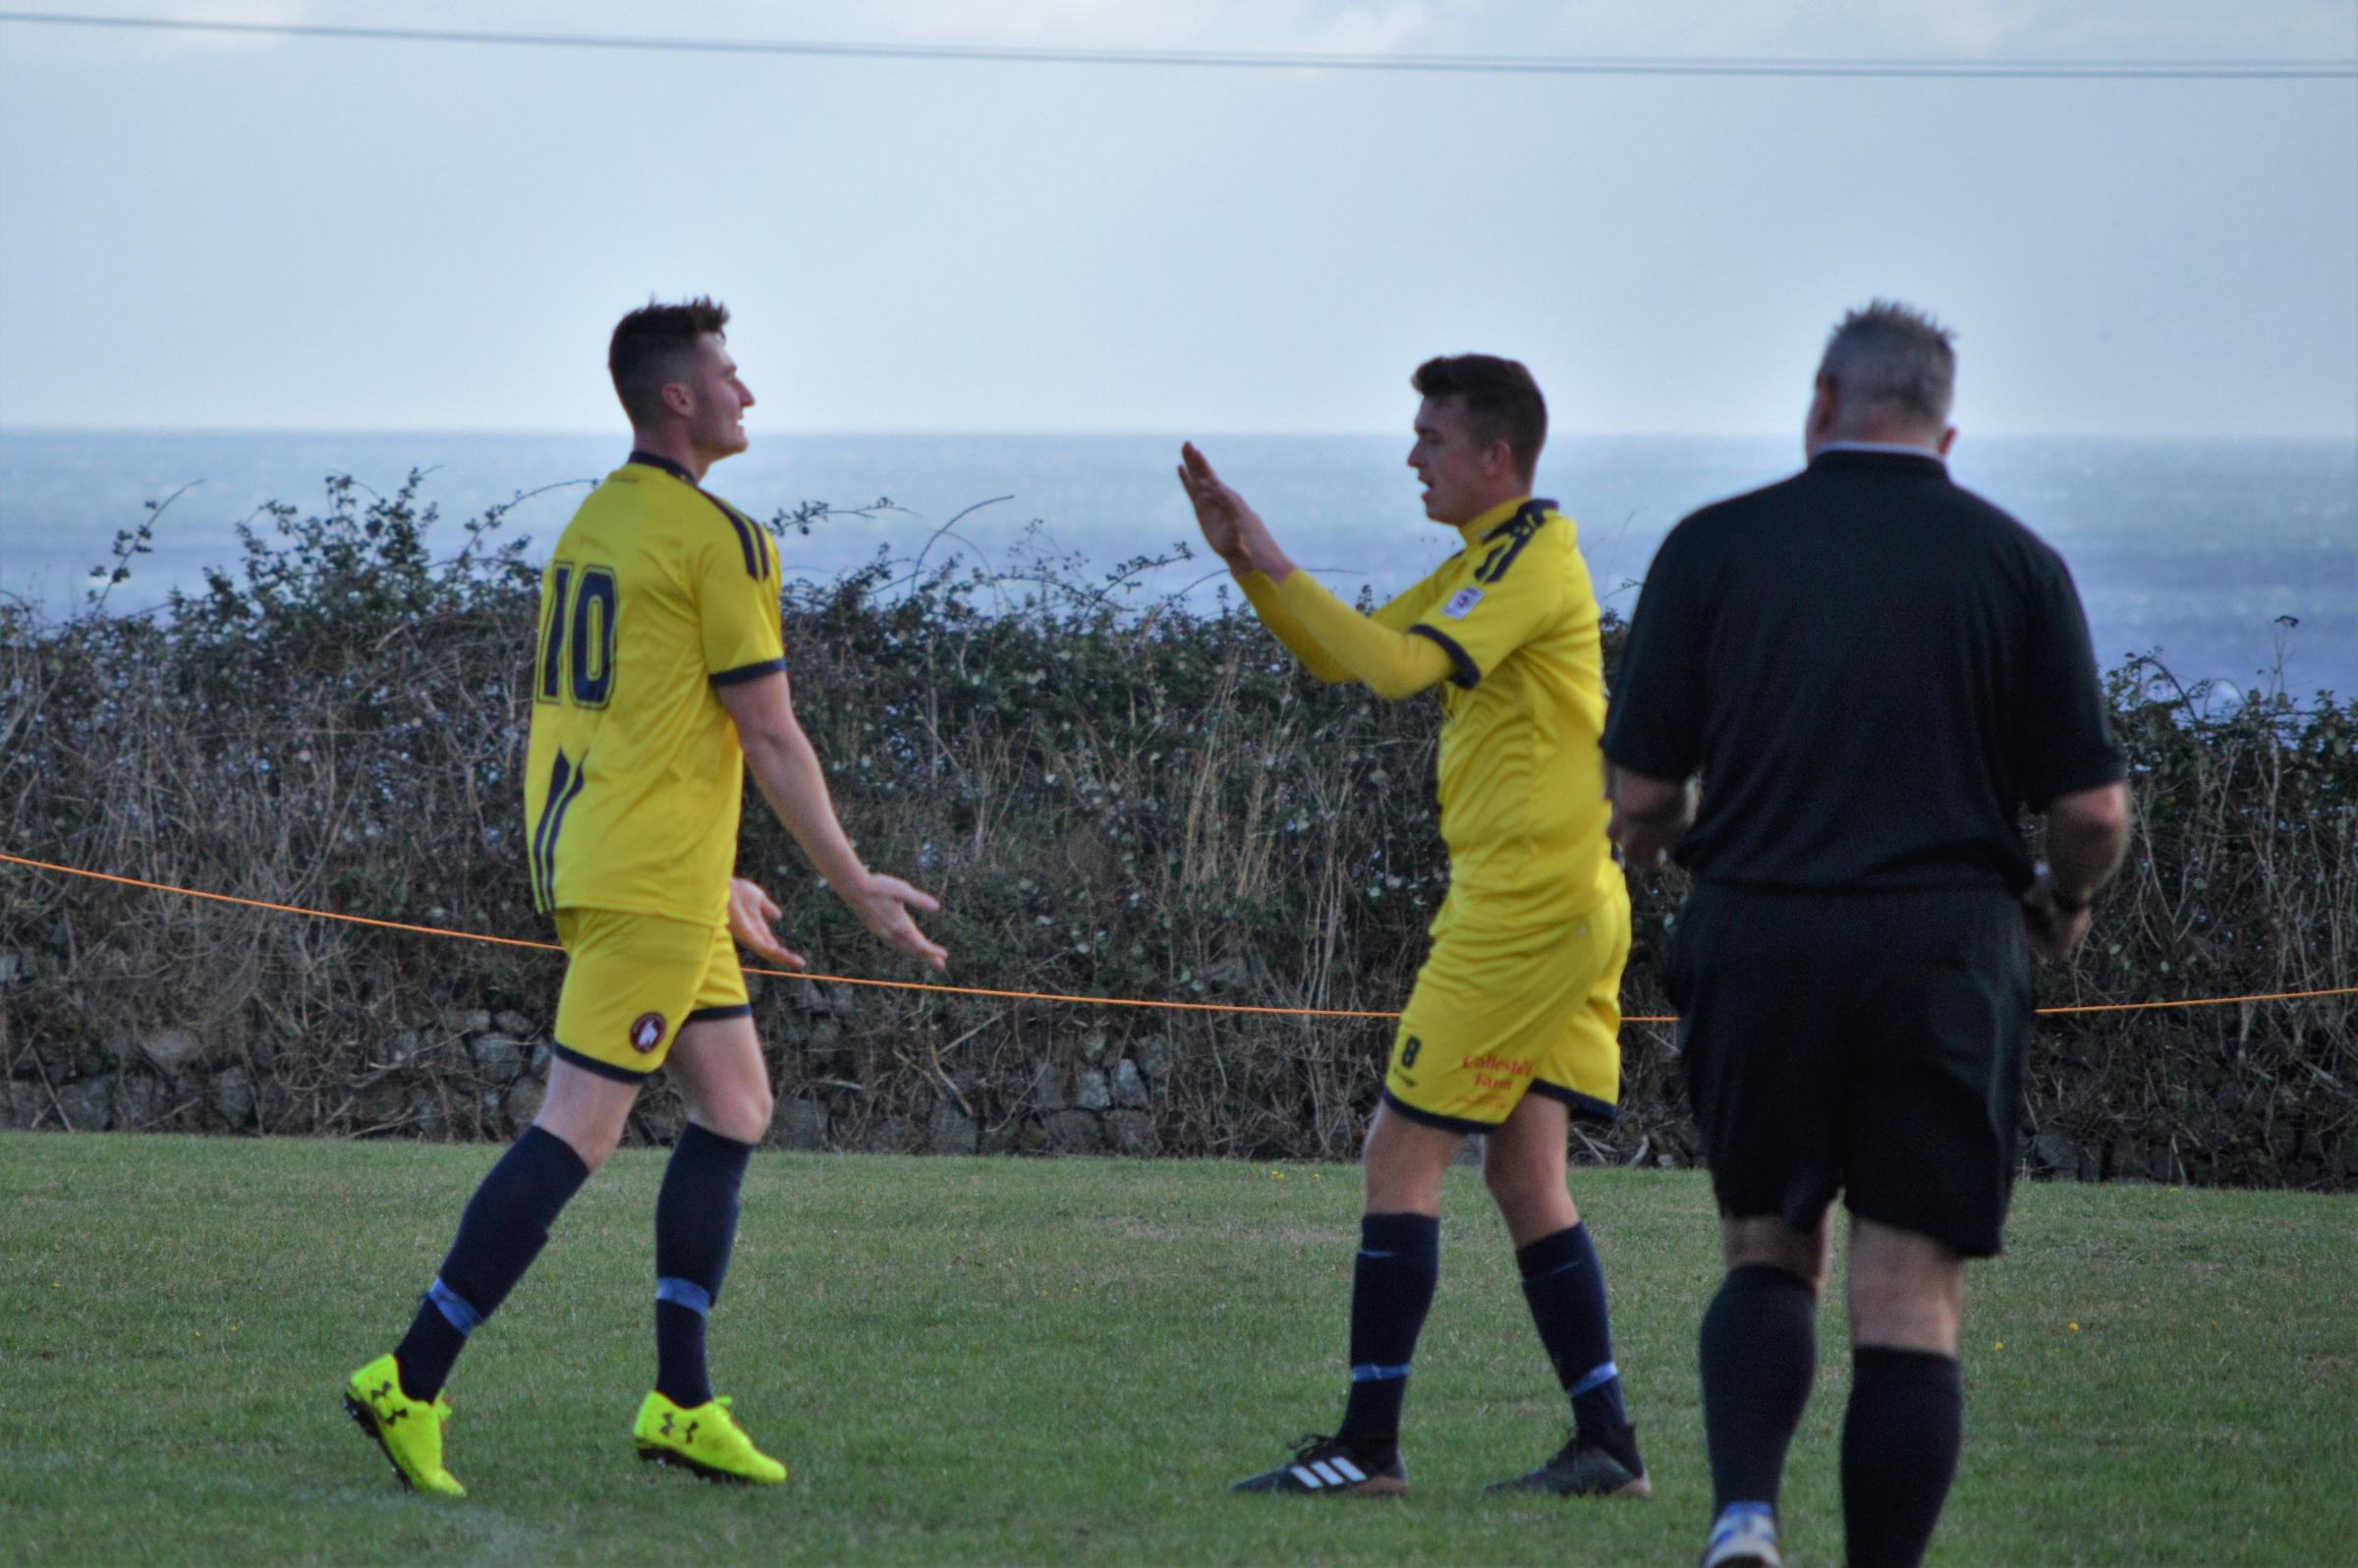 Wendron United striker Rory Jarvis (left) celebrates his second goal of his side's 2-0 win at Lizard Argyle in the Cornwall Senior Cup on Saturday